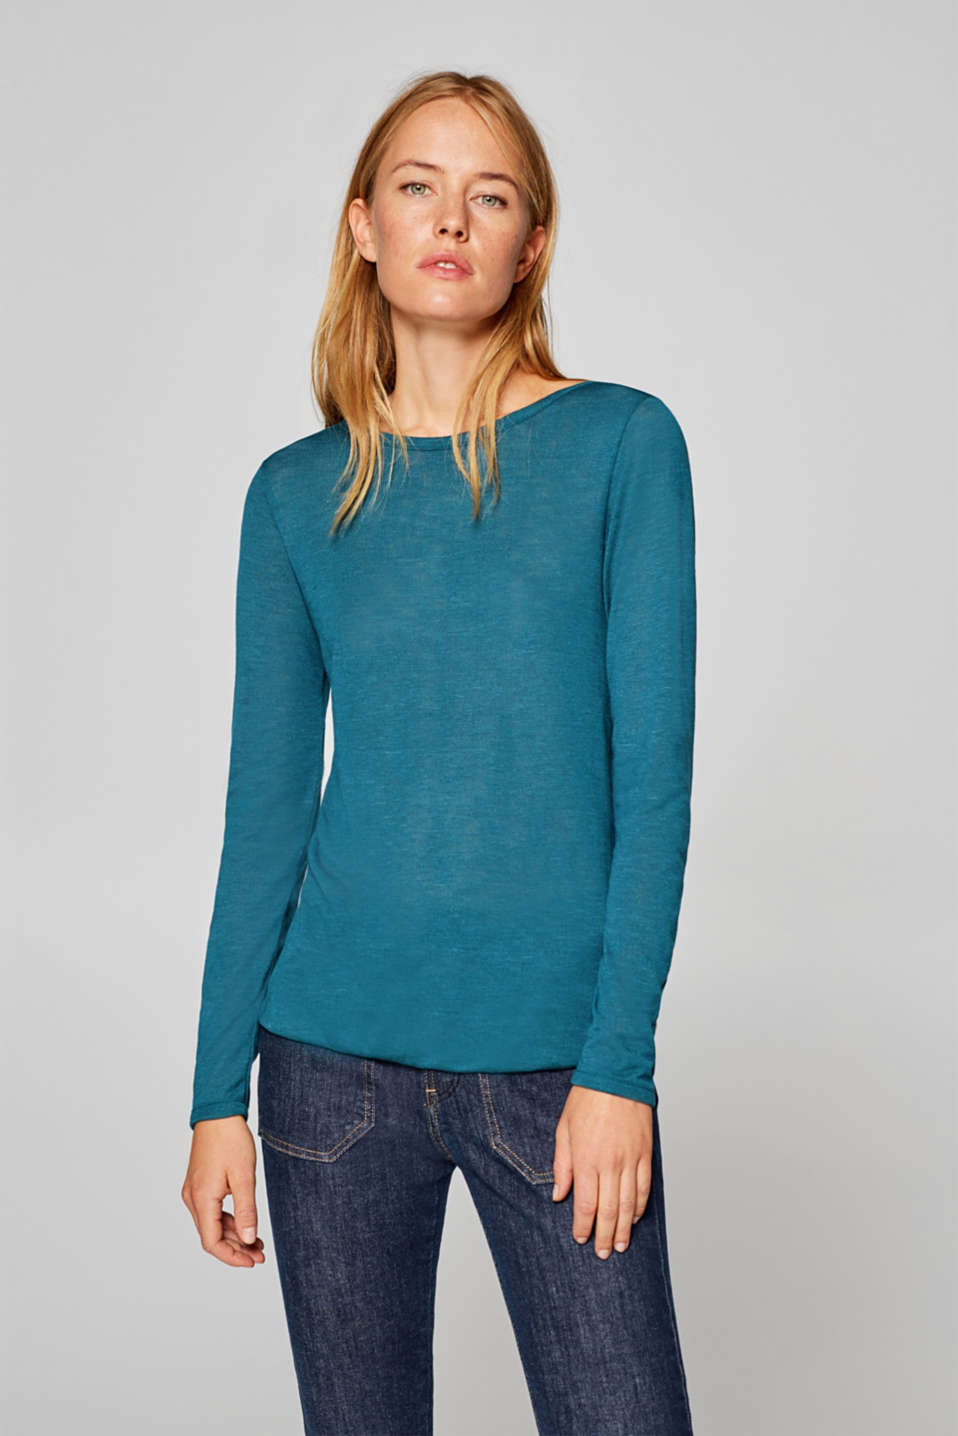 Esprit - Slub jersey long sleeve top with an elasticated hem